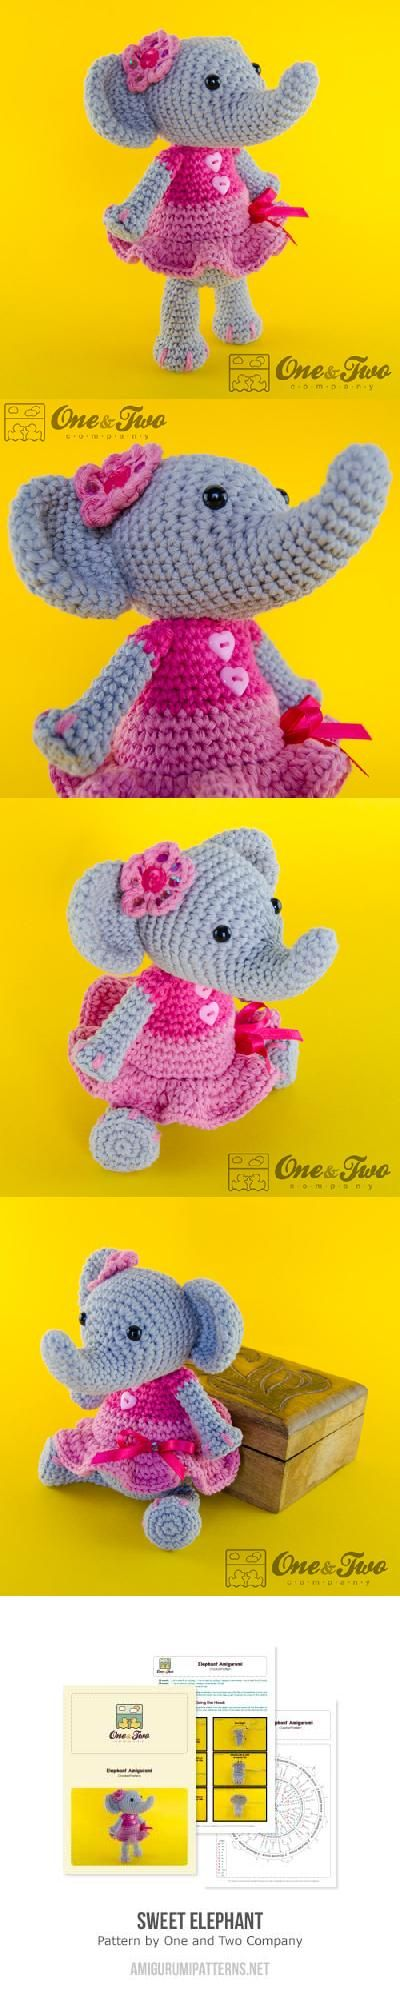 Hello Kitty Amigurumi Picasa : 17 Best images about crochet animals and toys on Pinterest ...